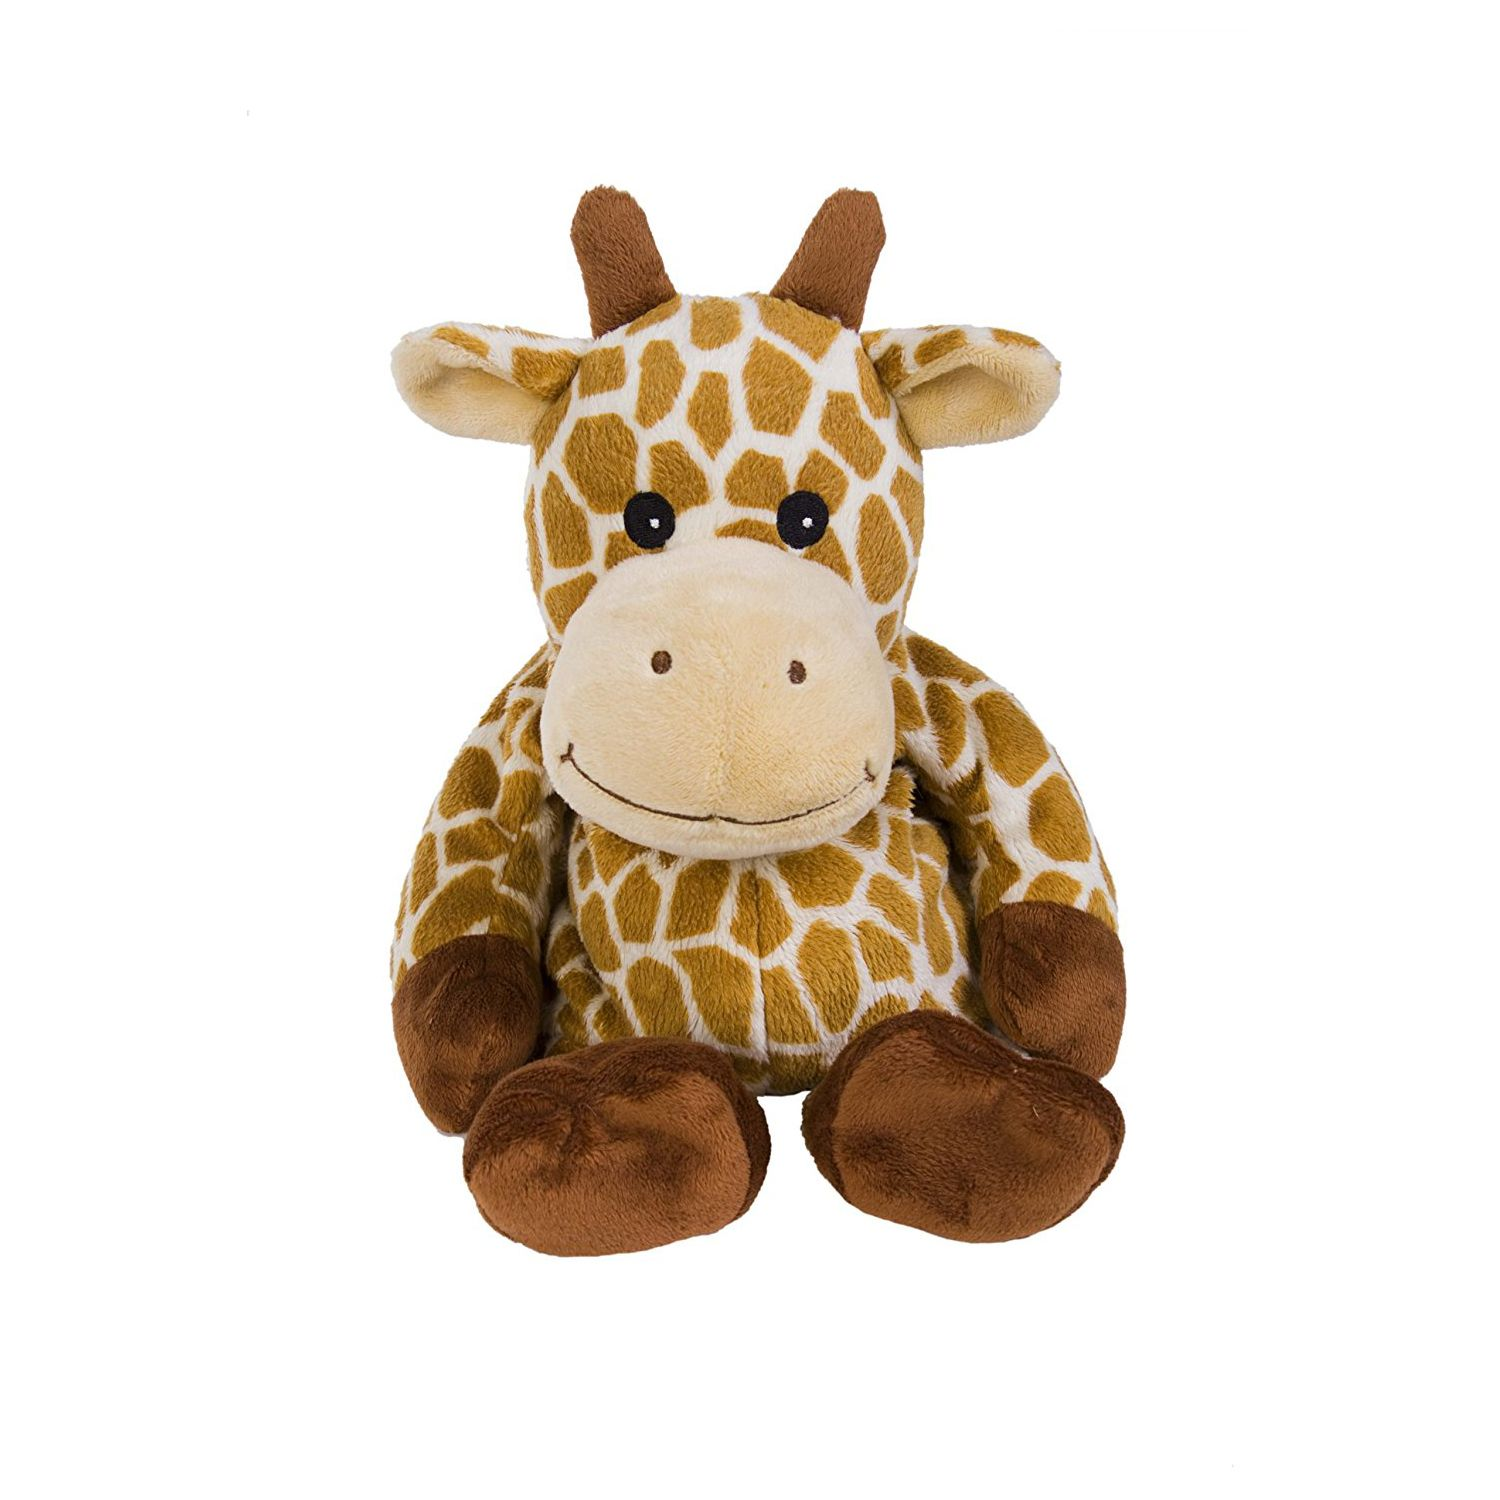 Warmies Animals Microwaveable Soft Cuddly Toy With